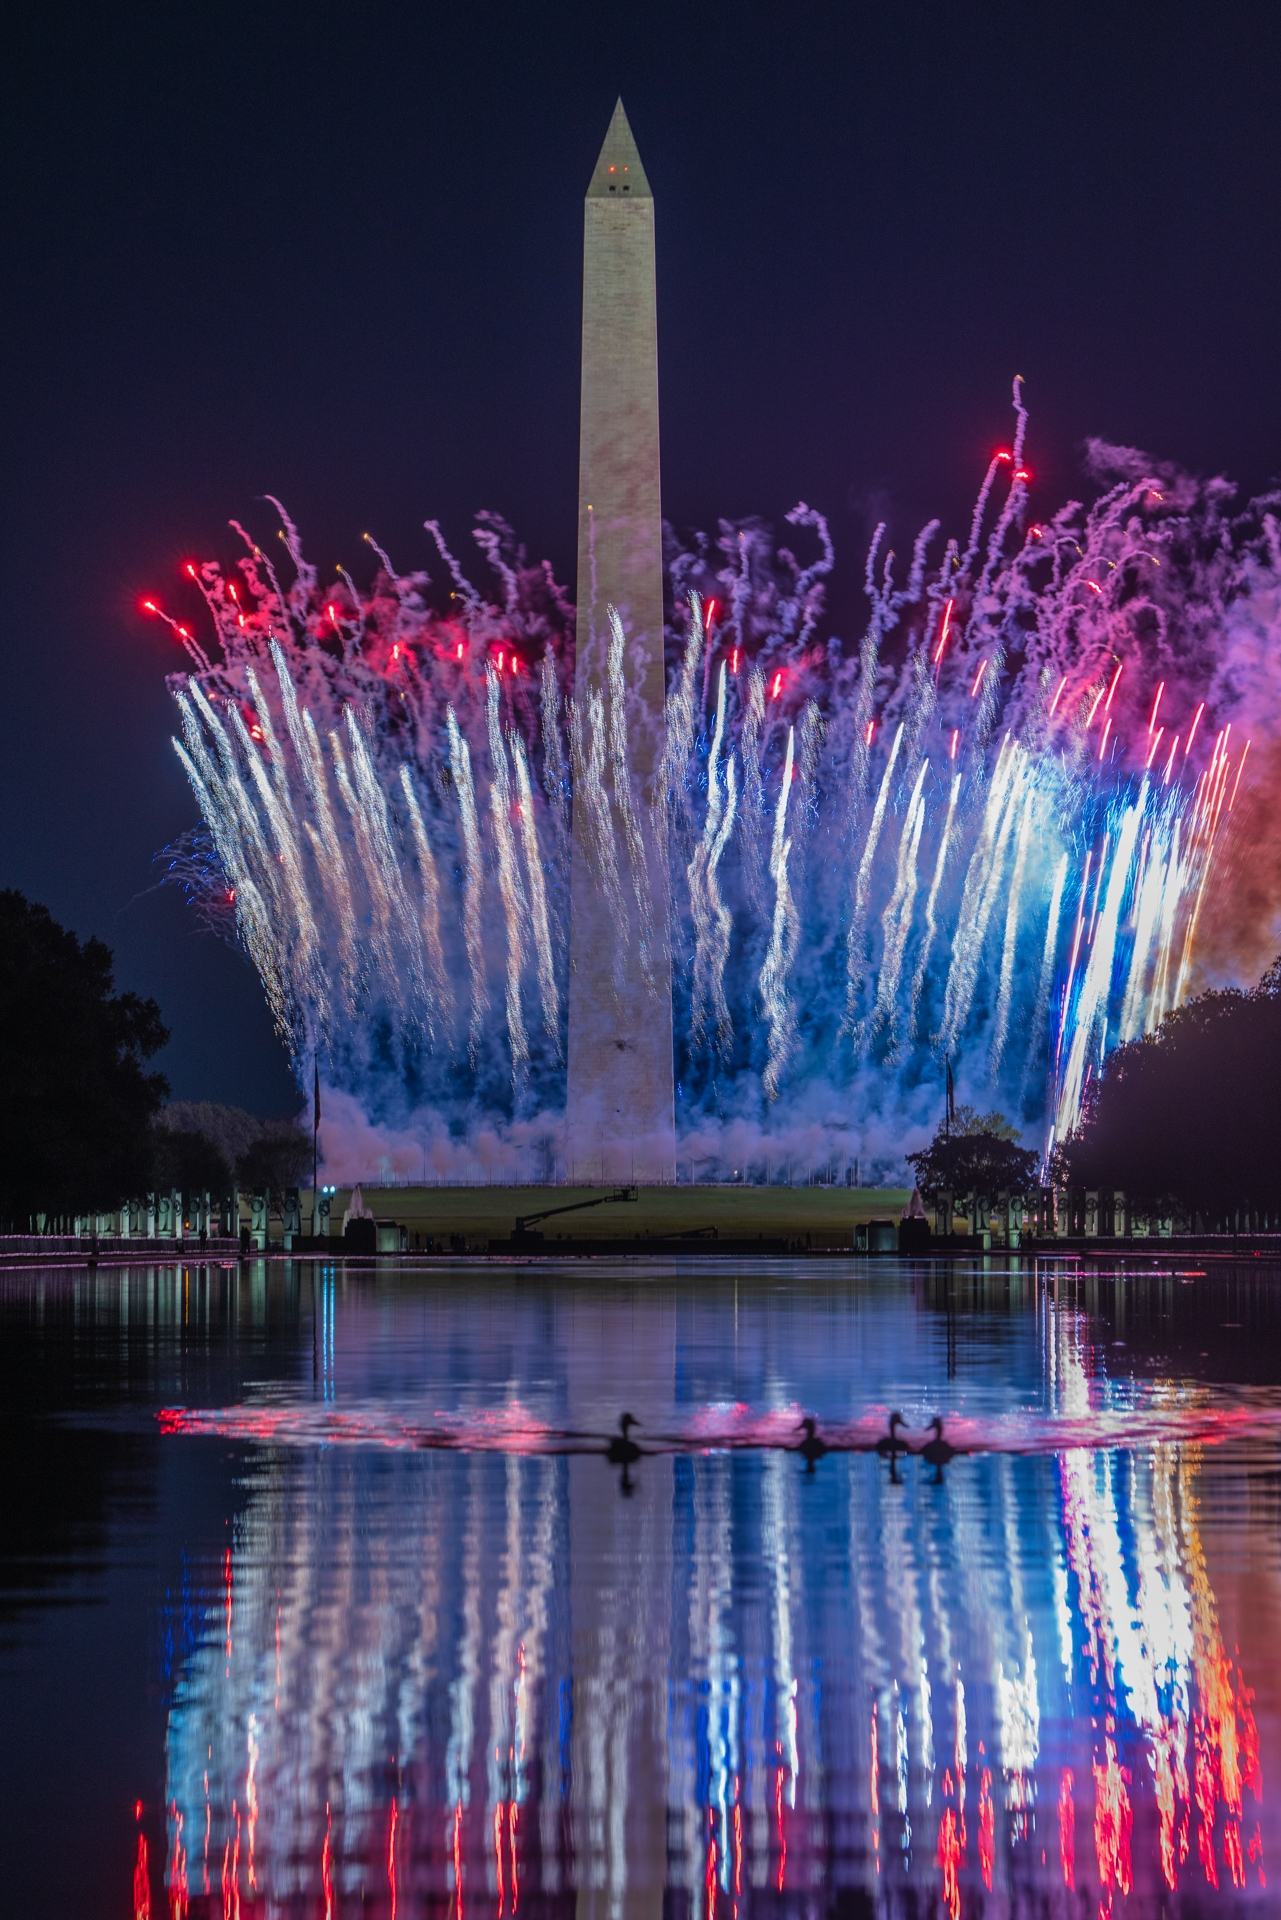 white house, washington monument, fireworks, reflecting pool, reflections, firework display, washington dc, president trump, republican nomination